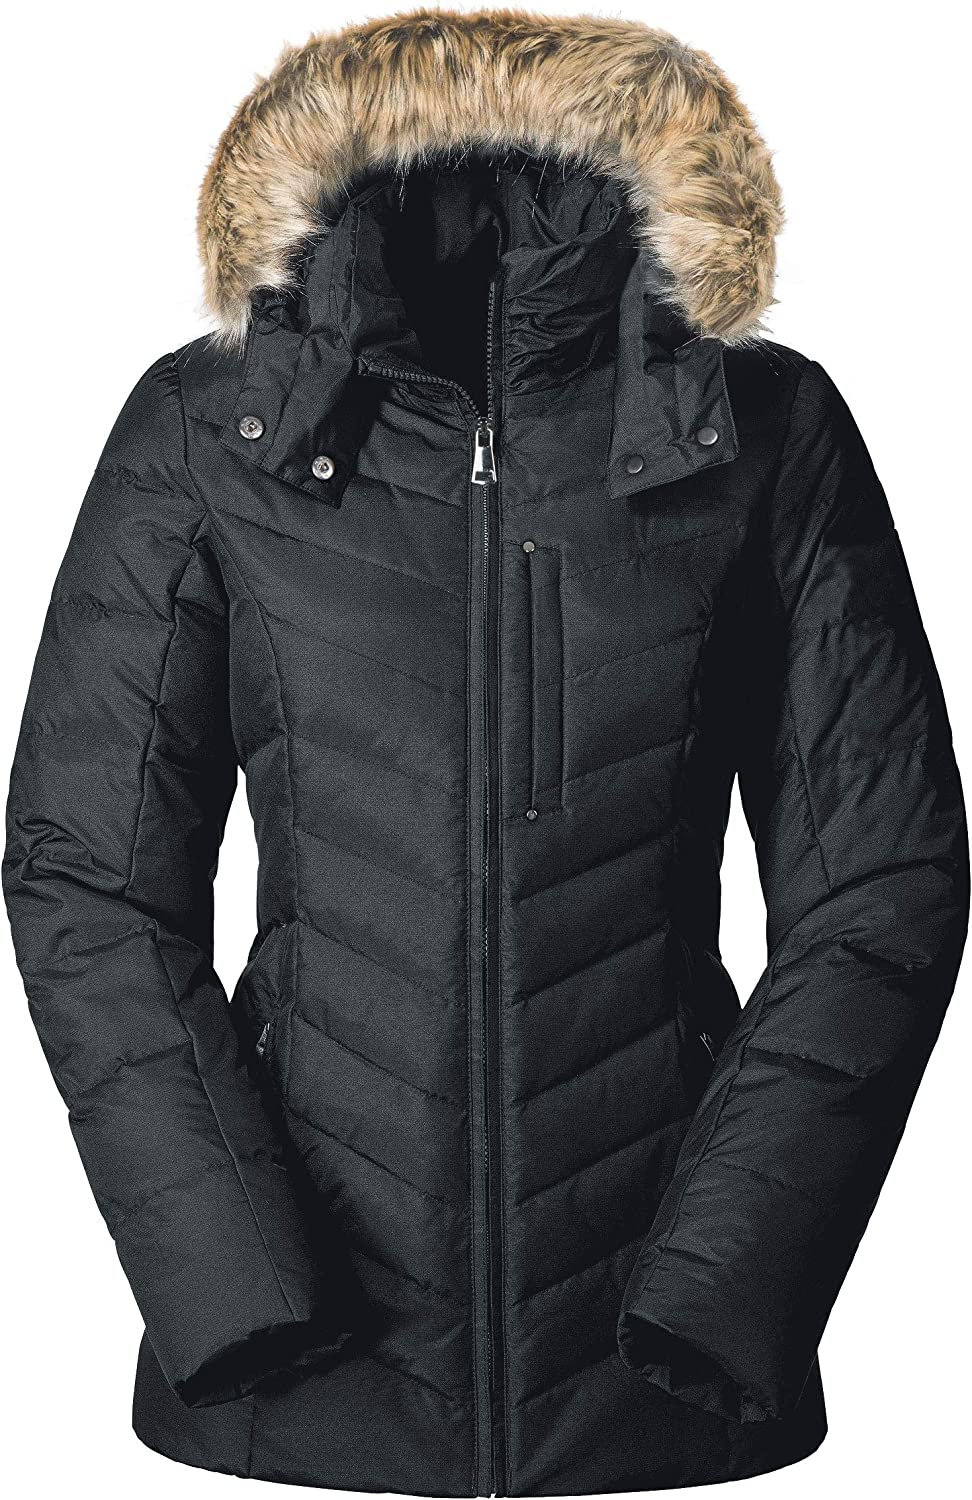 NUTEXROL Womens Thickened Winter Coat 5 ☆ popular New products, world's highest quality popular! Hooded Jacke Parka Outwear